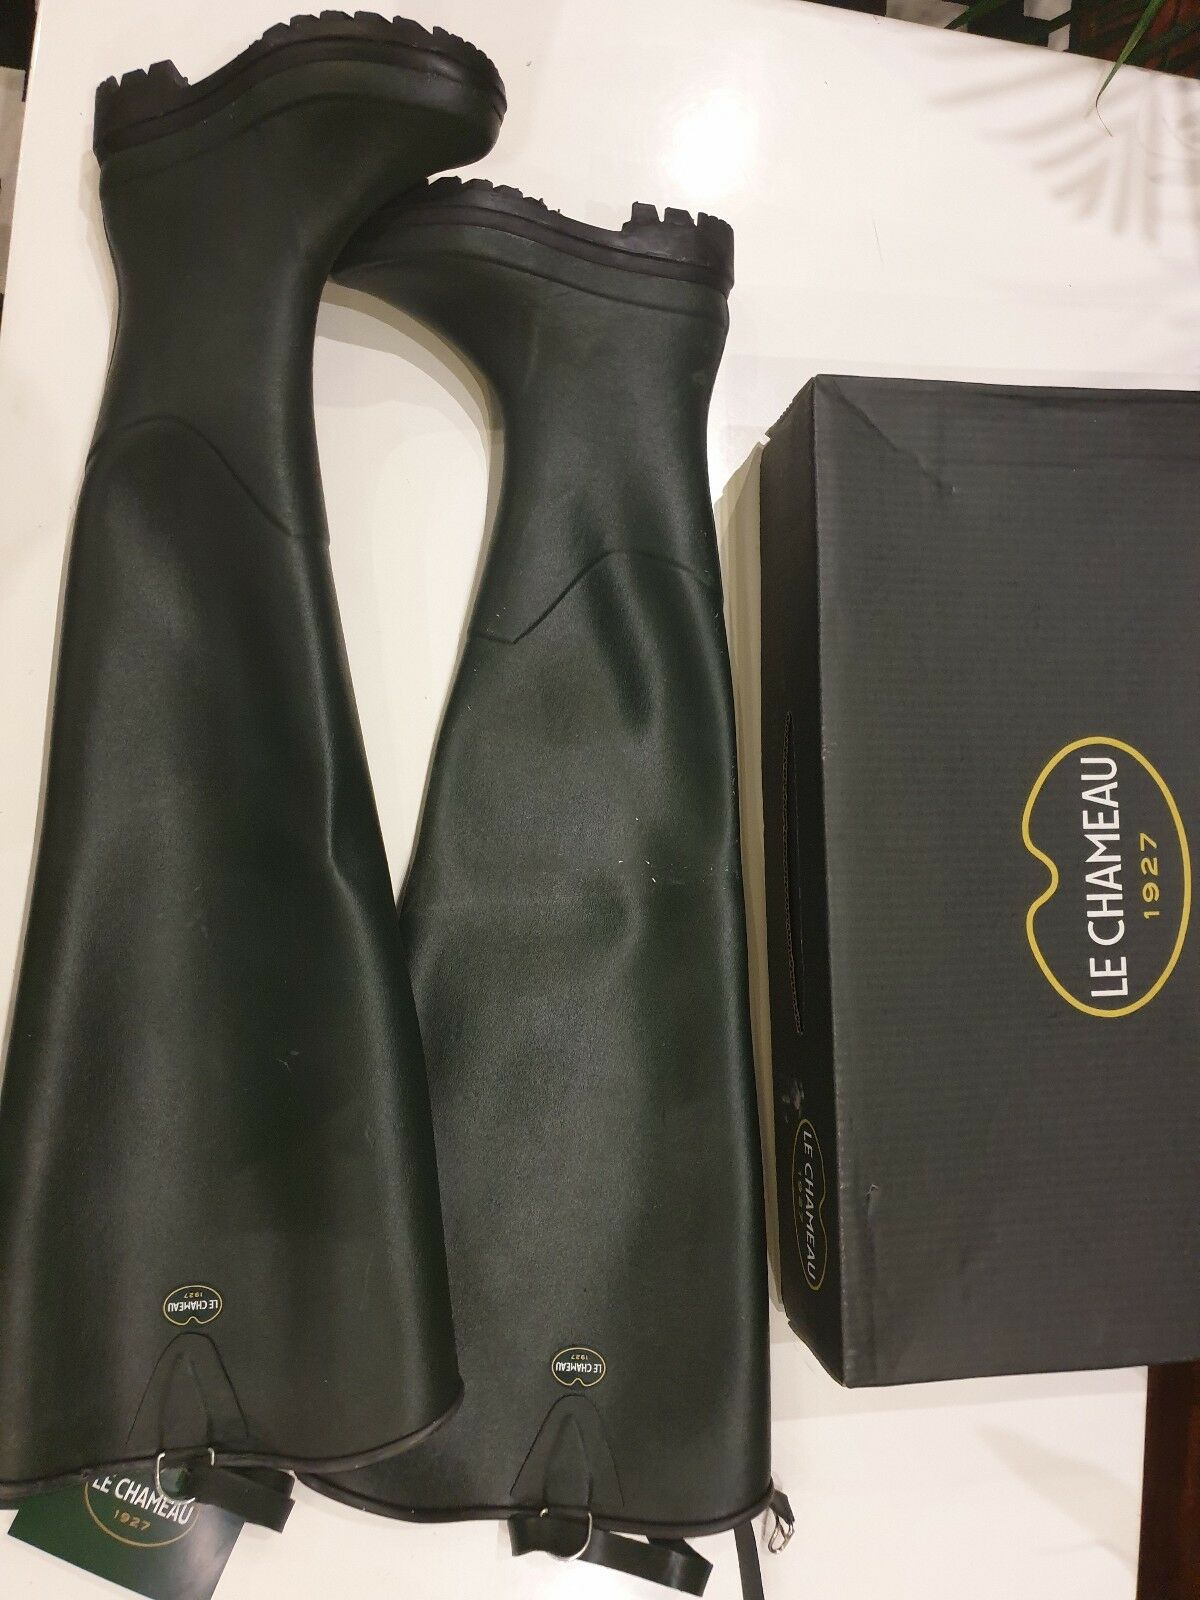 Le Chameau Delta Lim Green Thigh Waders Wellington Wellies  size 37 SALE